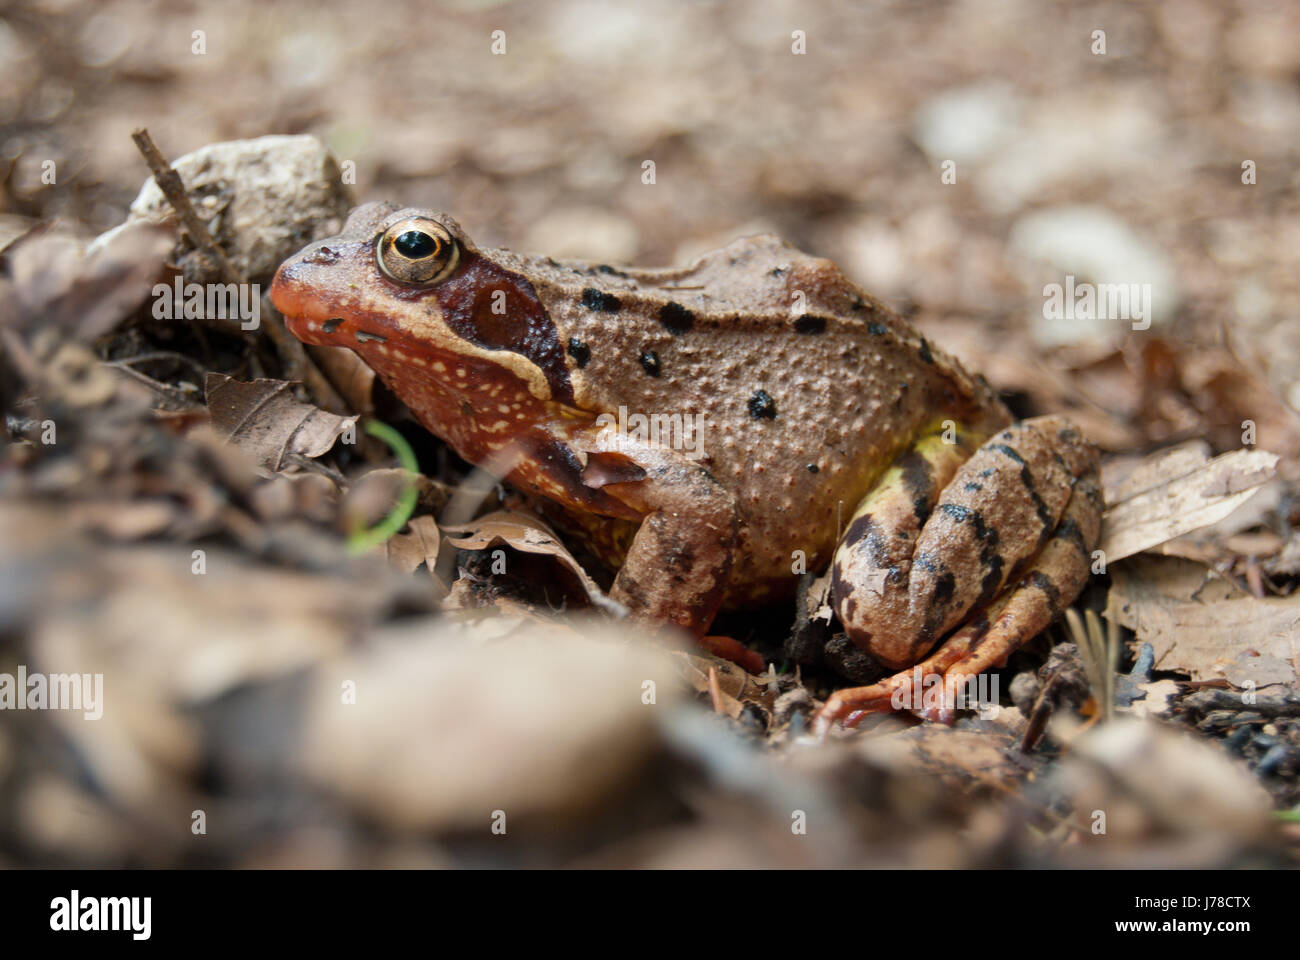 Common frog (Rana temporaria) - Stock Image